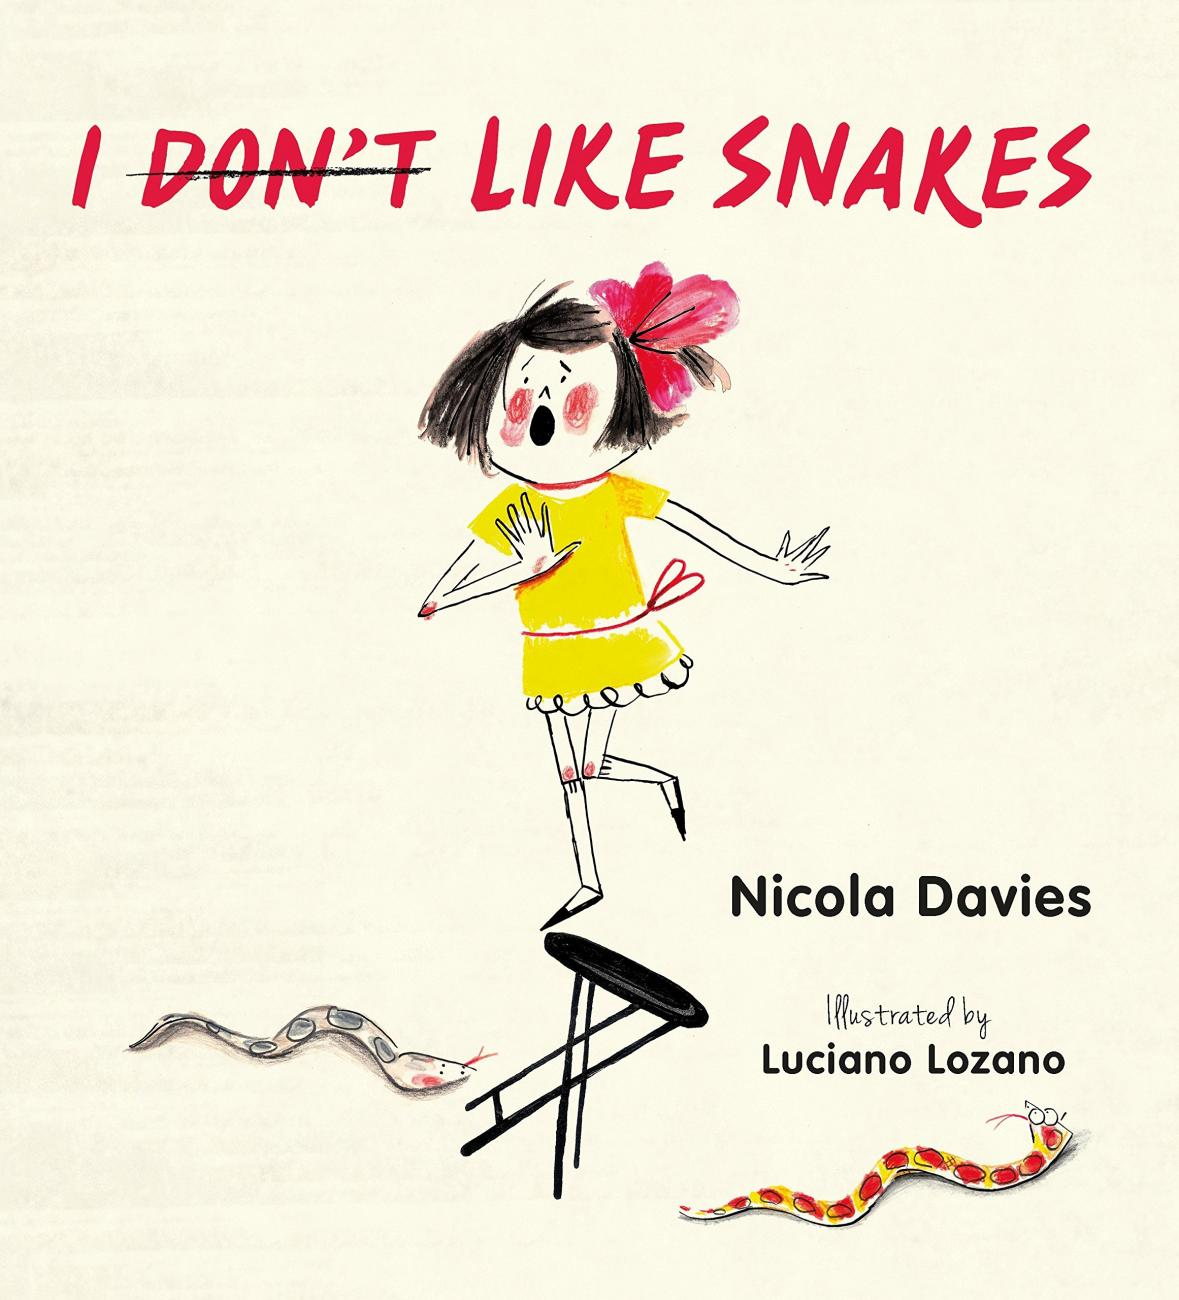 Cover of the book I (Don't) Like Snakes by Nicola Davies, illustrated by Luciano Lozano